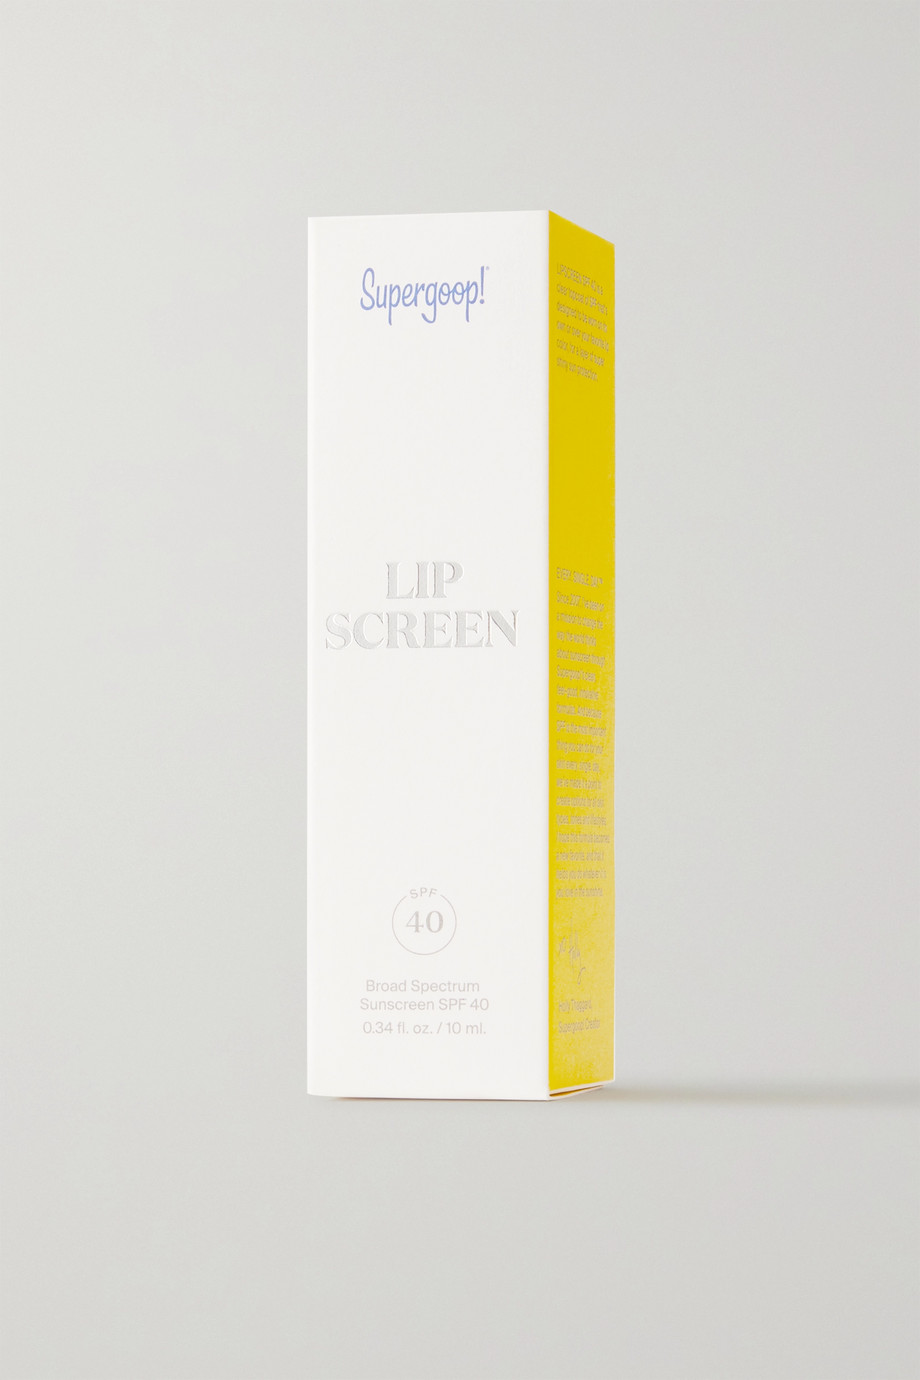 Supergoop! Lipscreen SPF40, 10ml